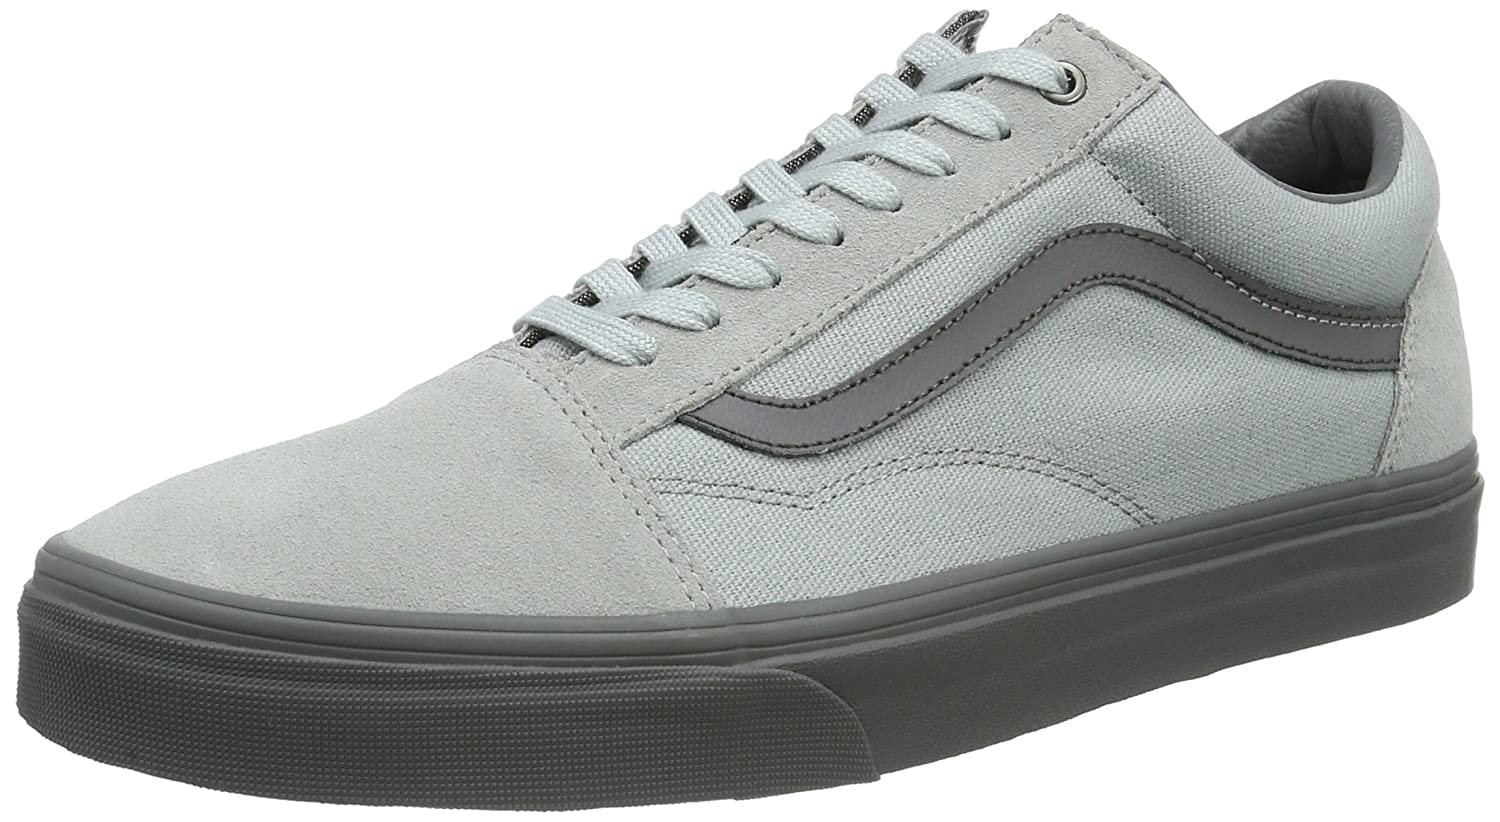 Vans Unisex Old Skool Classic Skate Shoes B01I22EDBO 10.5|High-rise/Pewter